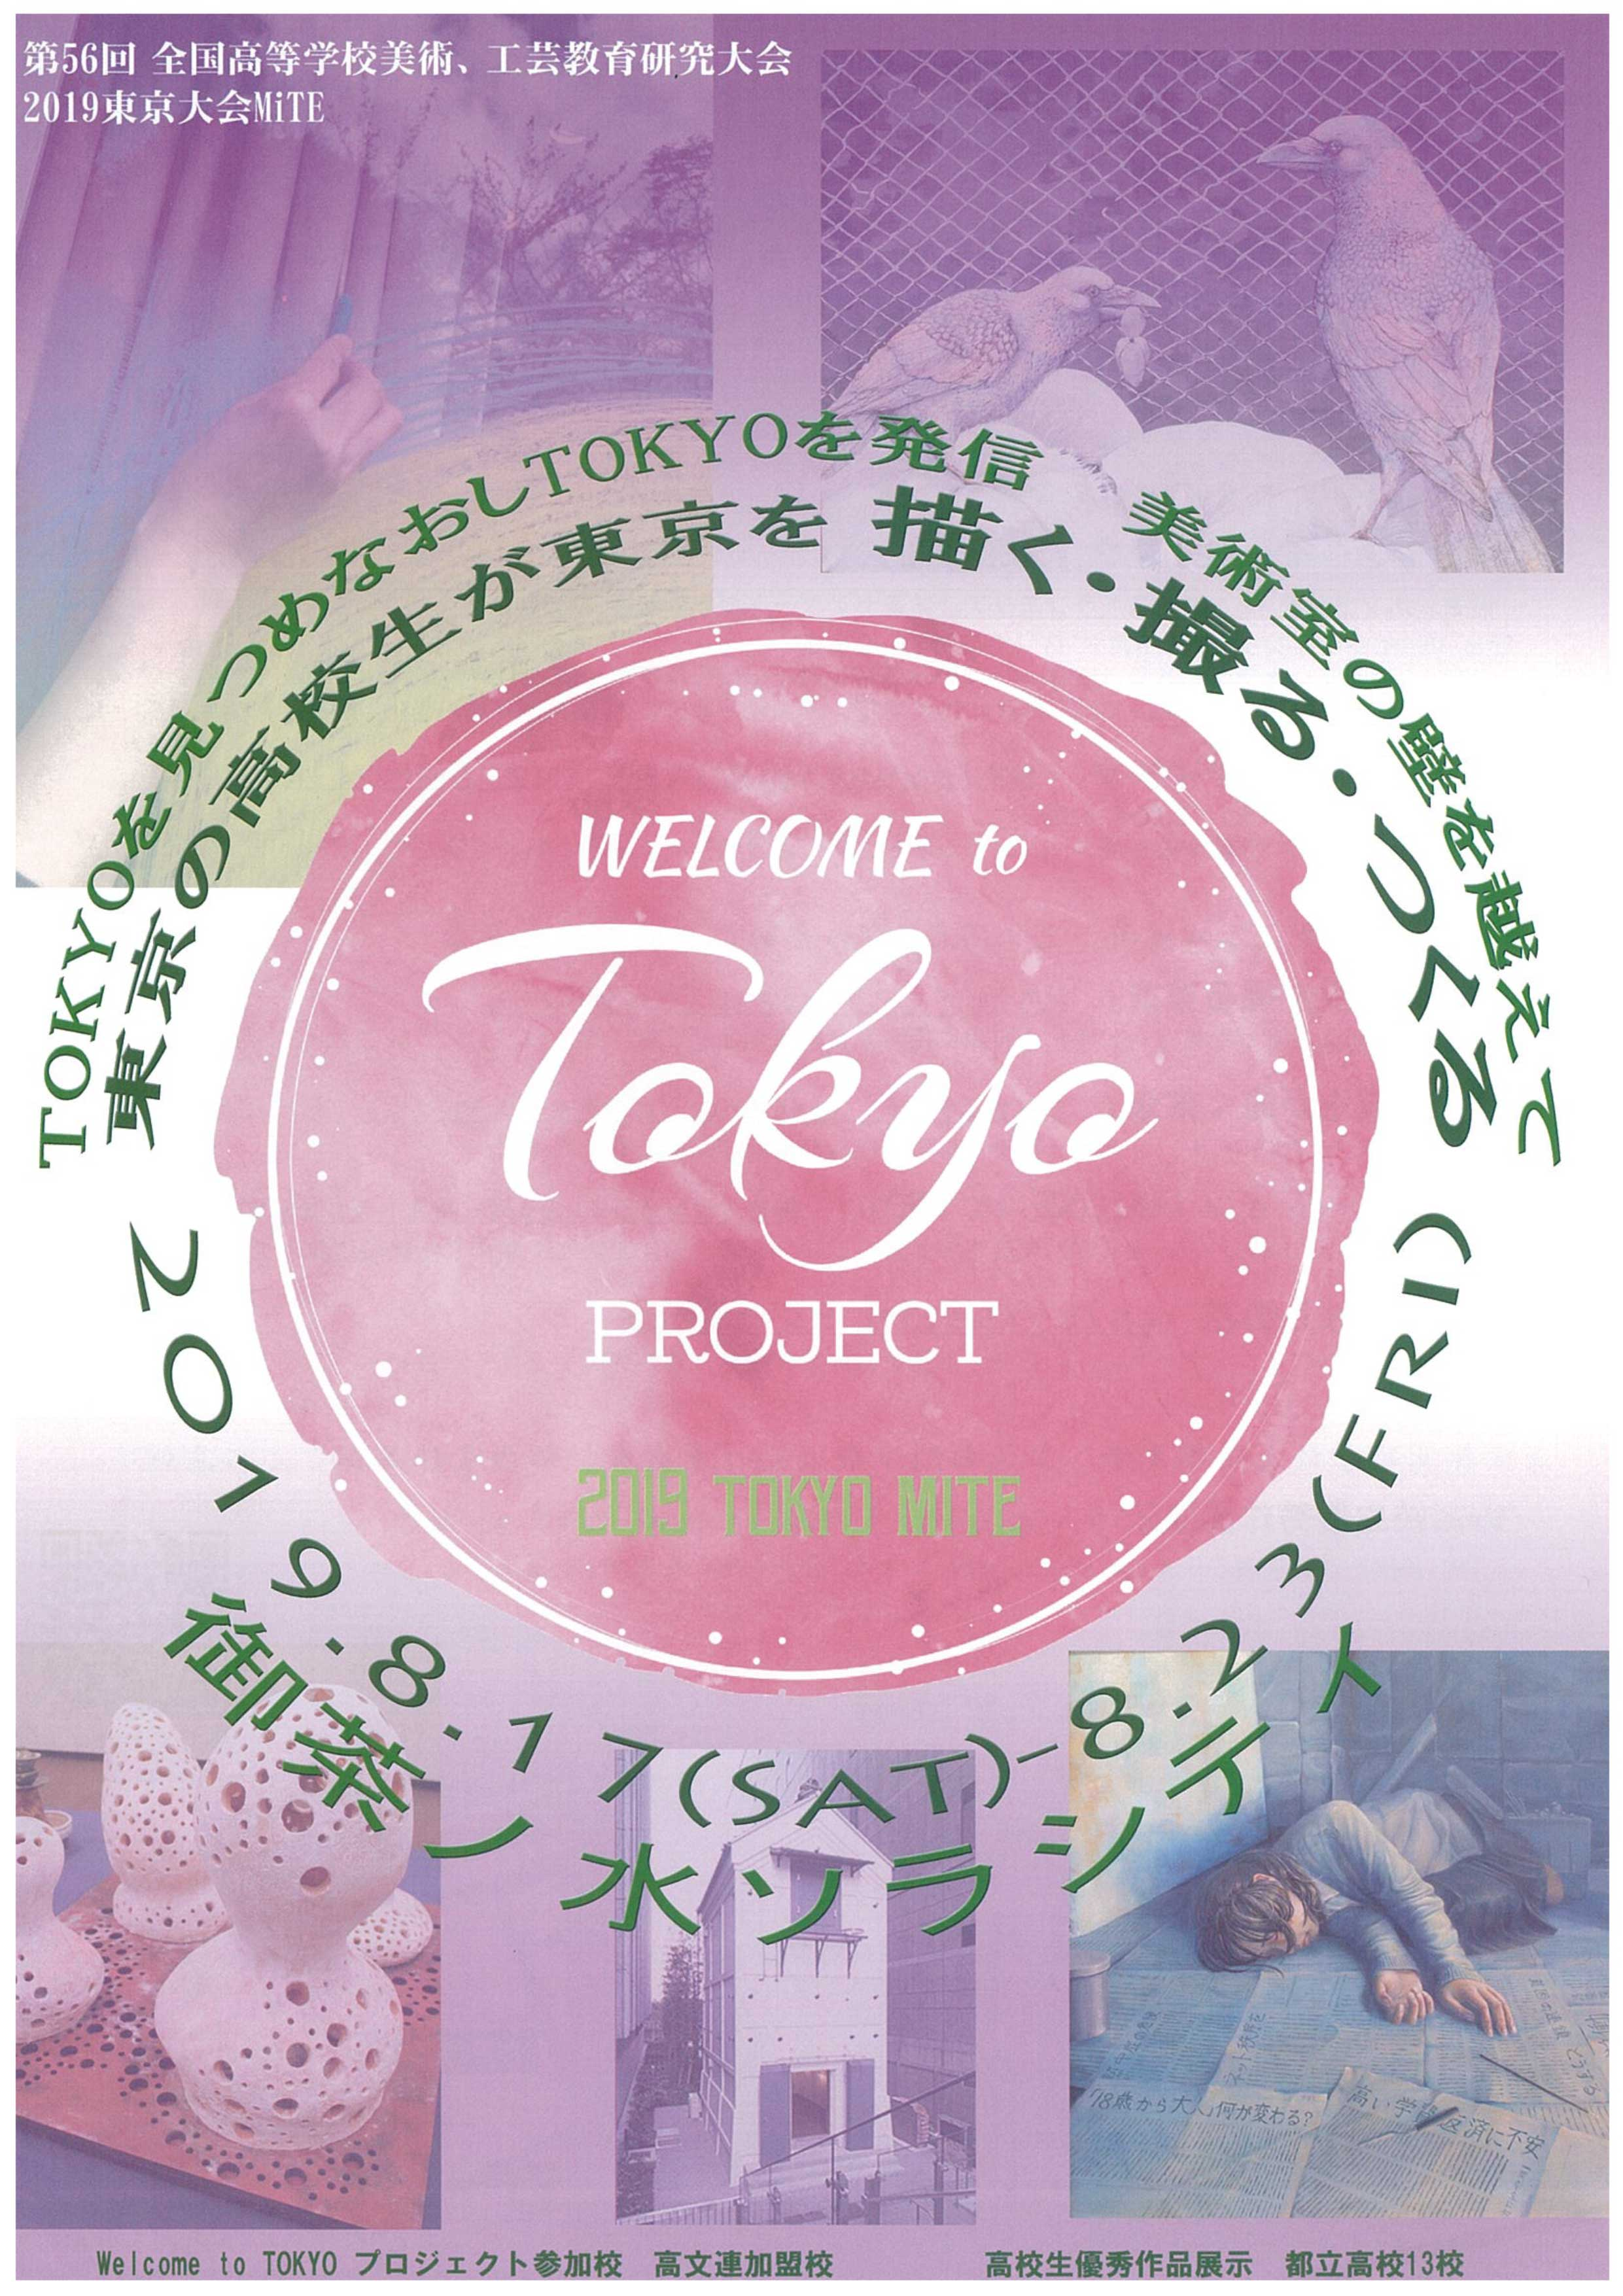 Welcome to TOKYO Project  生徒作品展示